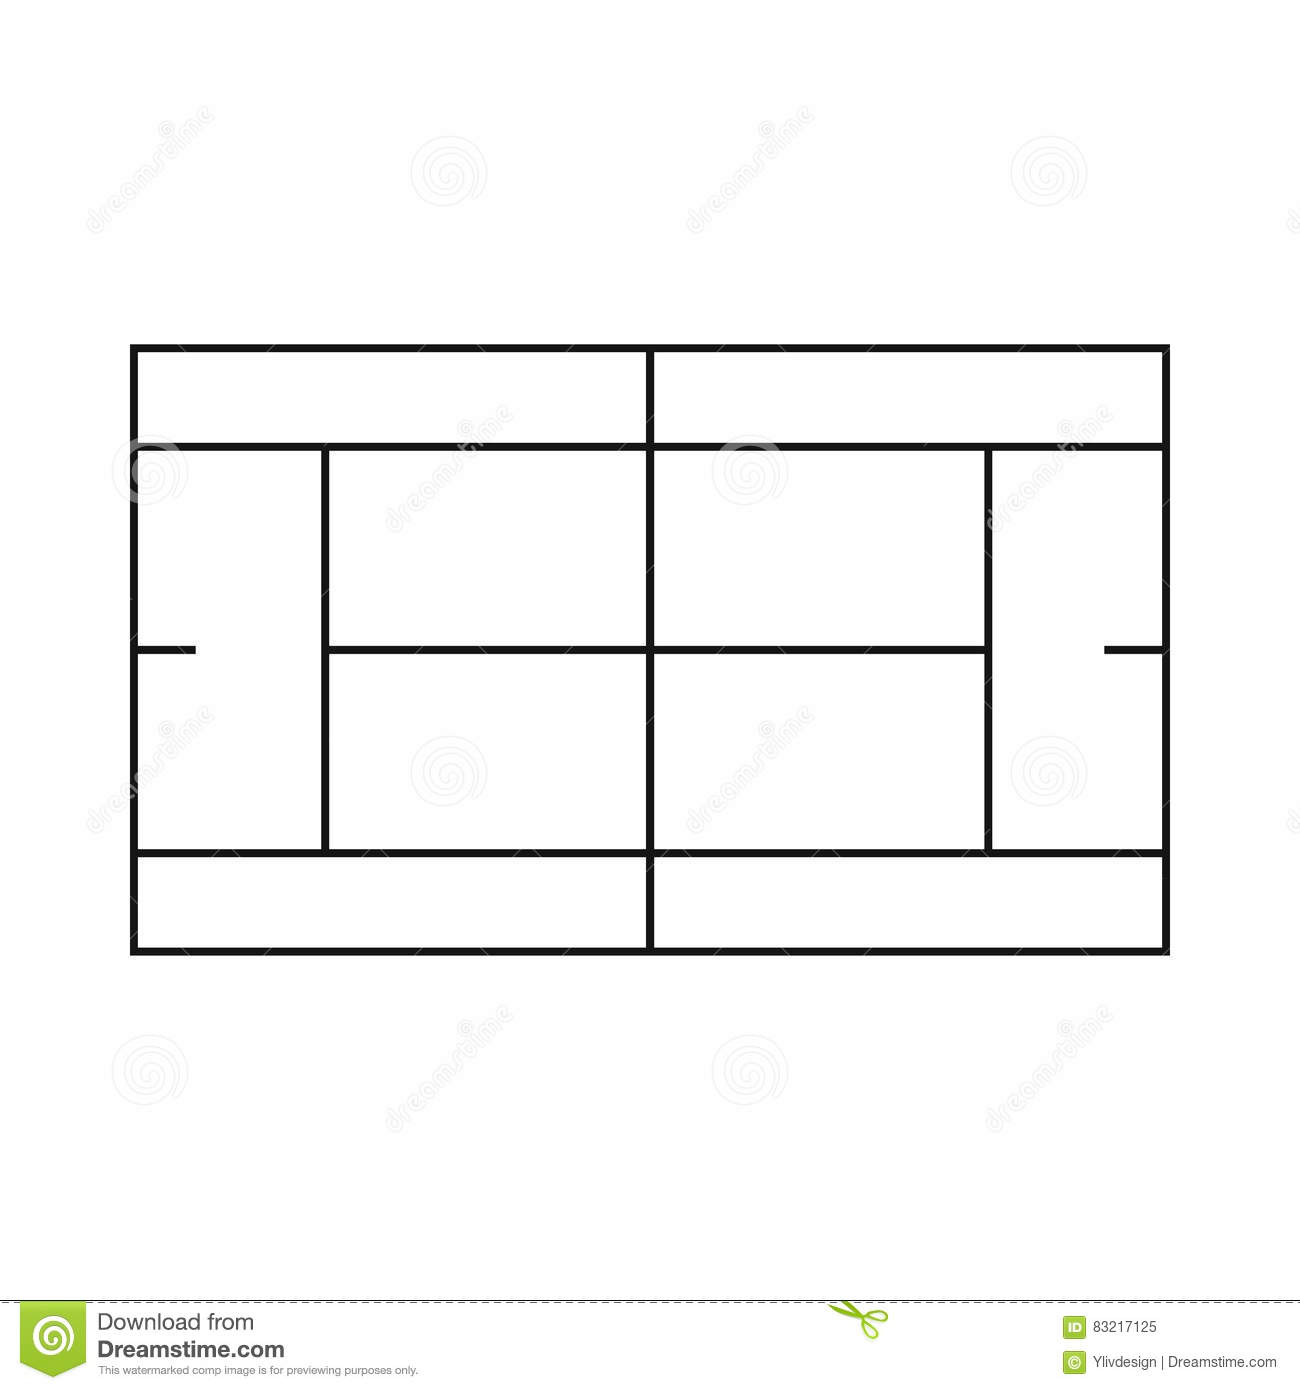 measurement of tennis court with diagram seventh grade by gary soto plot template search for wiring diagrams